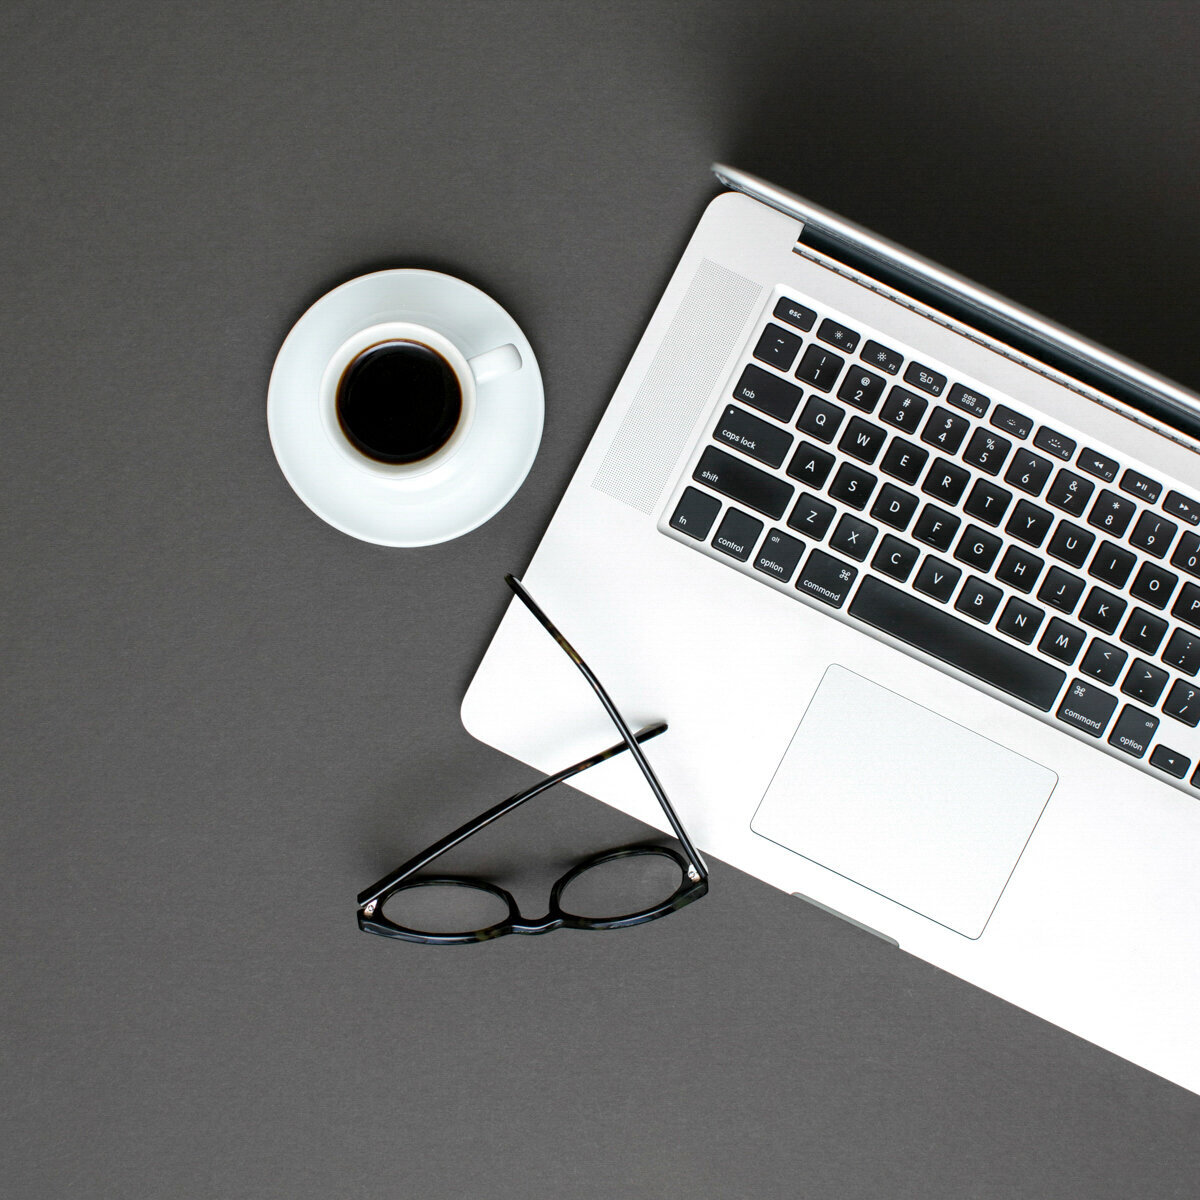 mac book next to a black cup of coffee on a grey background